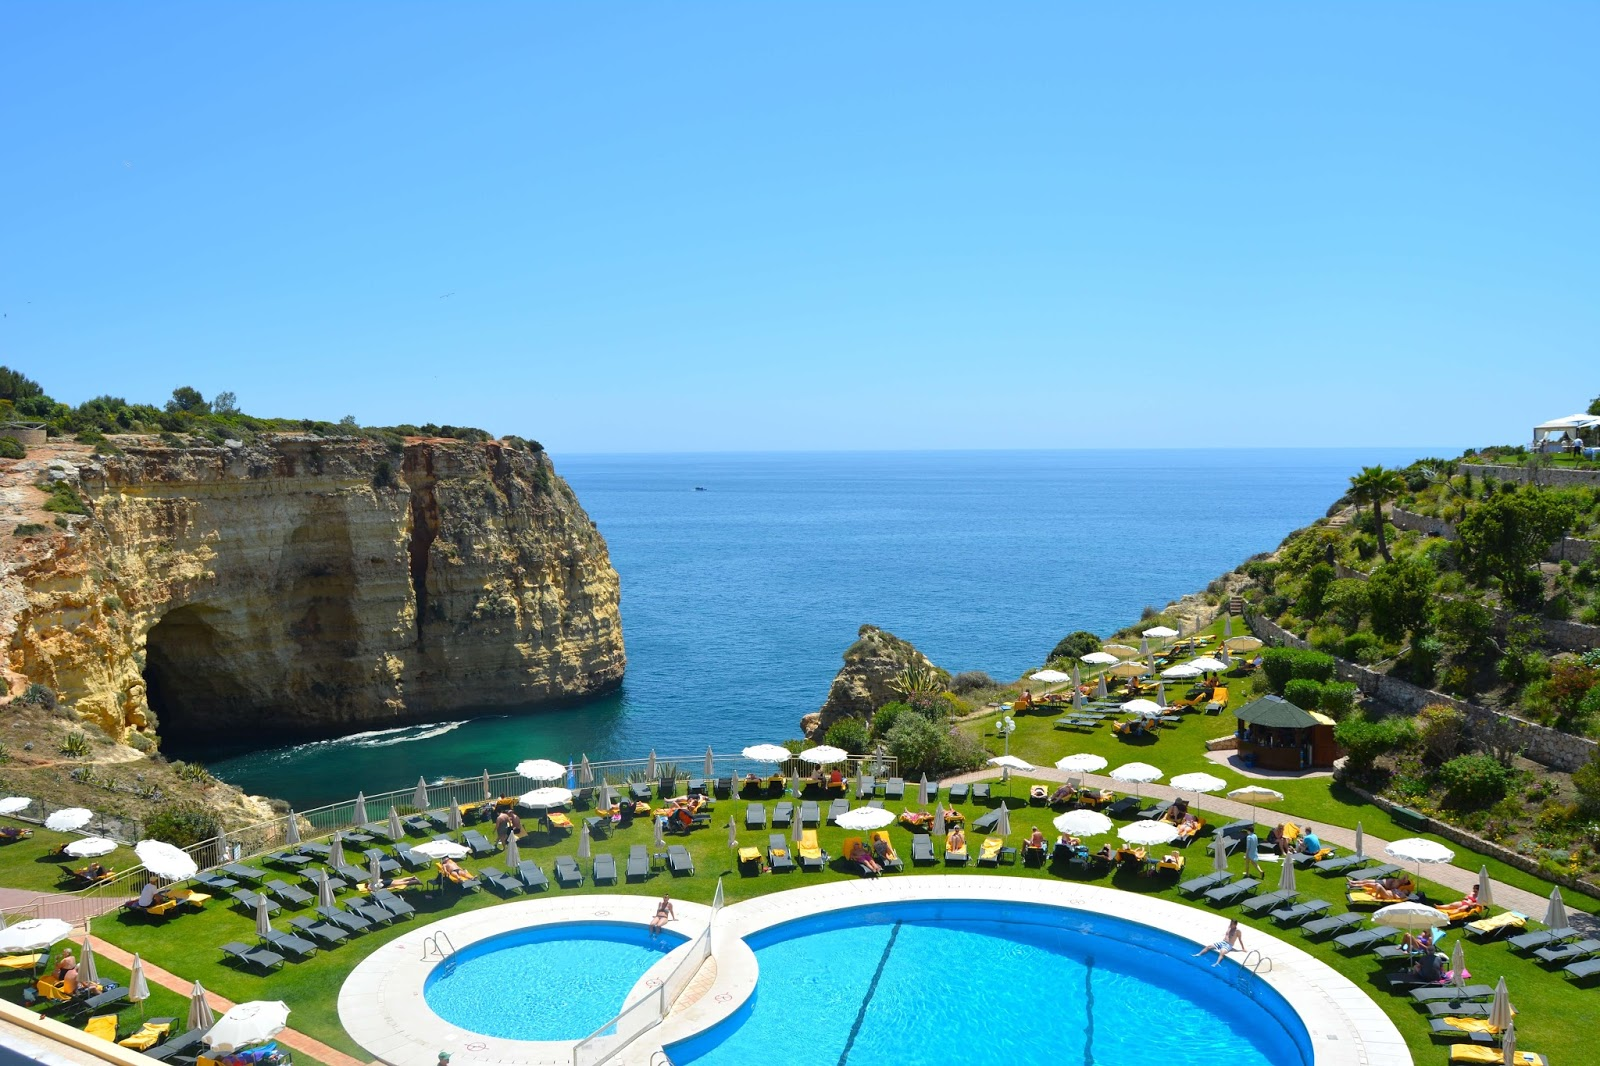 Hotel Tivoli Carvoeiro Algarve Booking A 3 Day Algarve Itinerary As An Indian Female And Solo Traveller